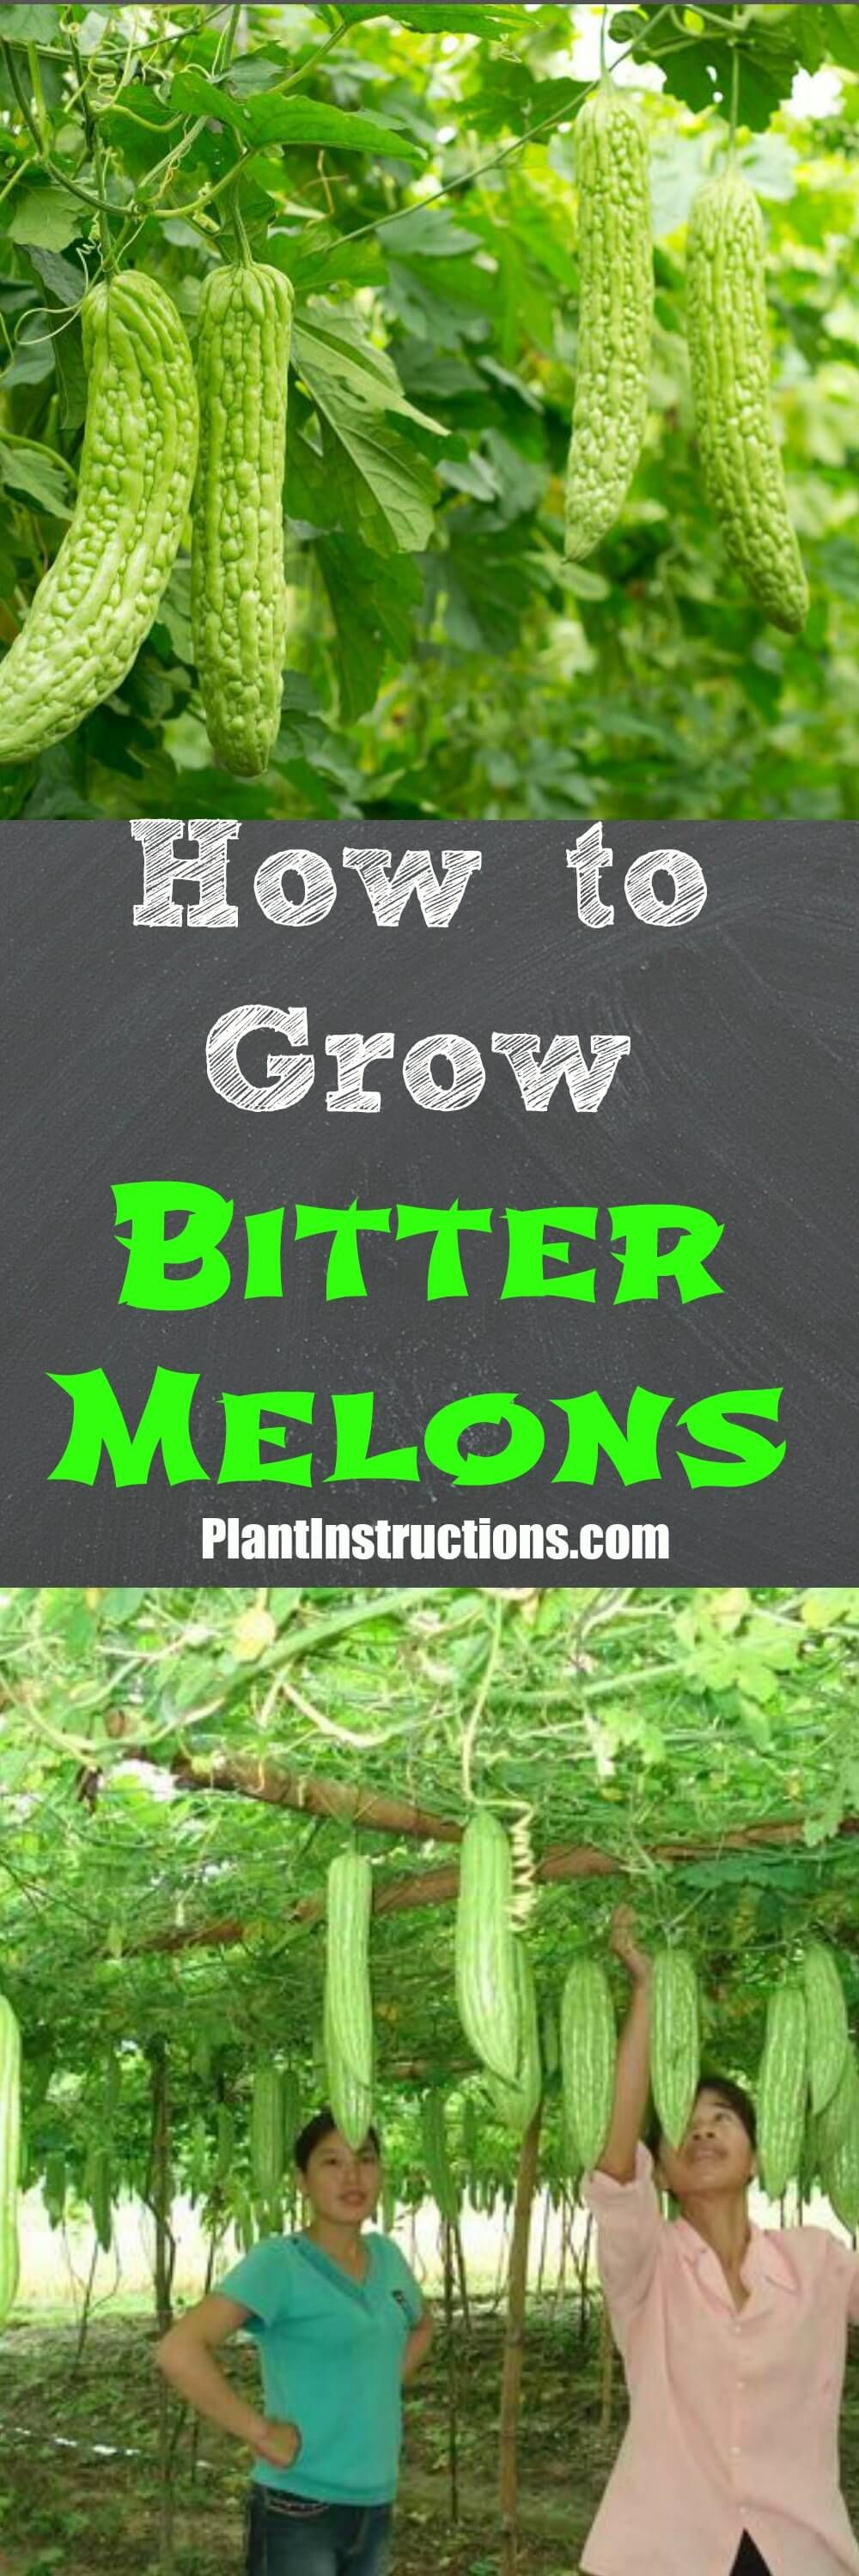 Growing Bitter Melon In The Vegetable Garden: How To Grow Bitter Melon